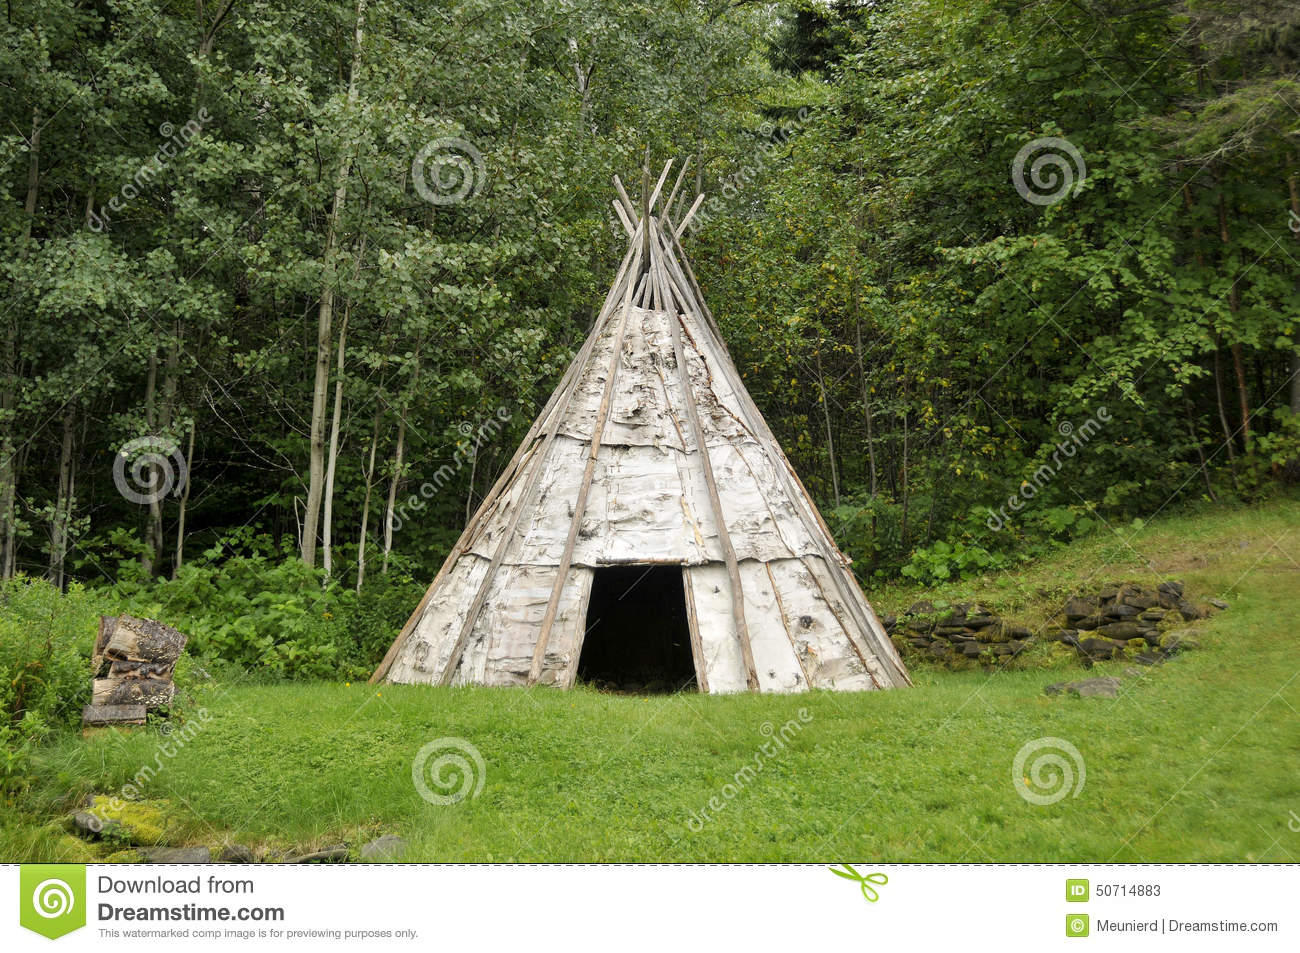 mikmaq teepee stock photo image 50714883 rhinoceros clip art black n white rhinocéros clipart